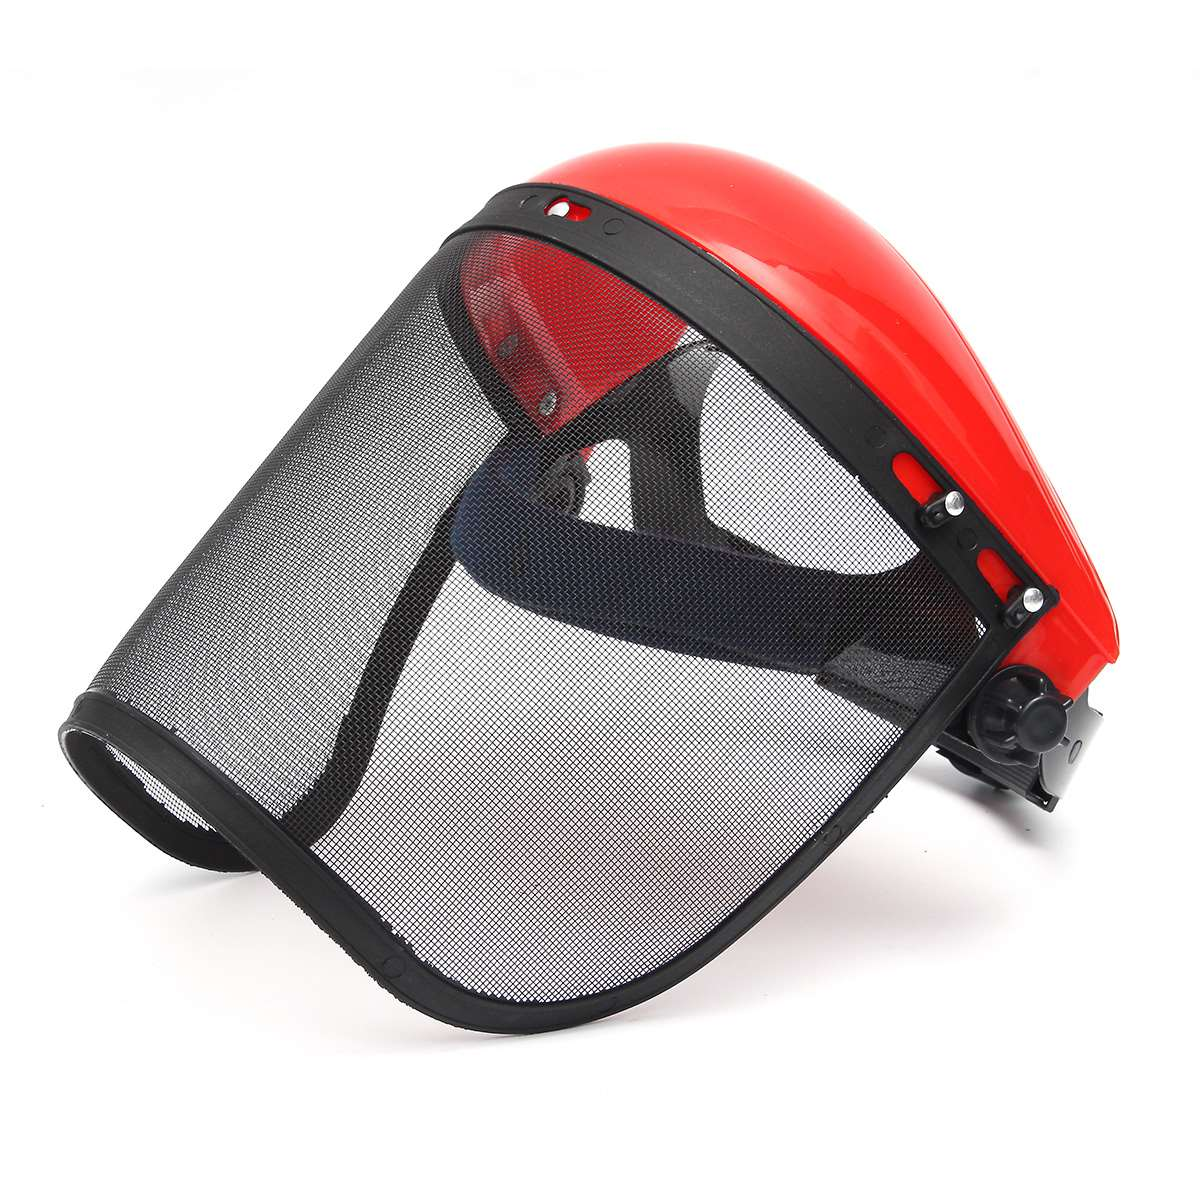 NEW Clear + Mesh Full Visor Flip Up Face Shield Screen Safety Mask Eye Protector Protective Mask Workwear chainsaw safety helmet w visor face protector hat eye protection free shipping outdoor brushcutter guard trimmer shield